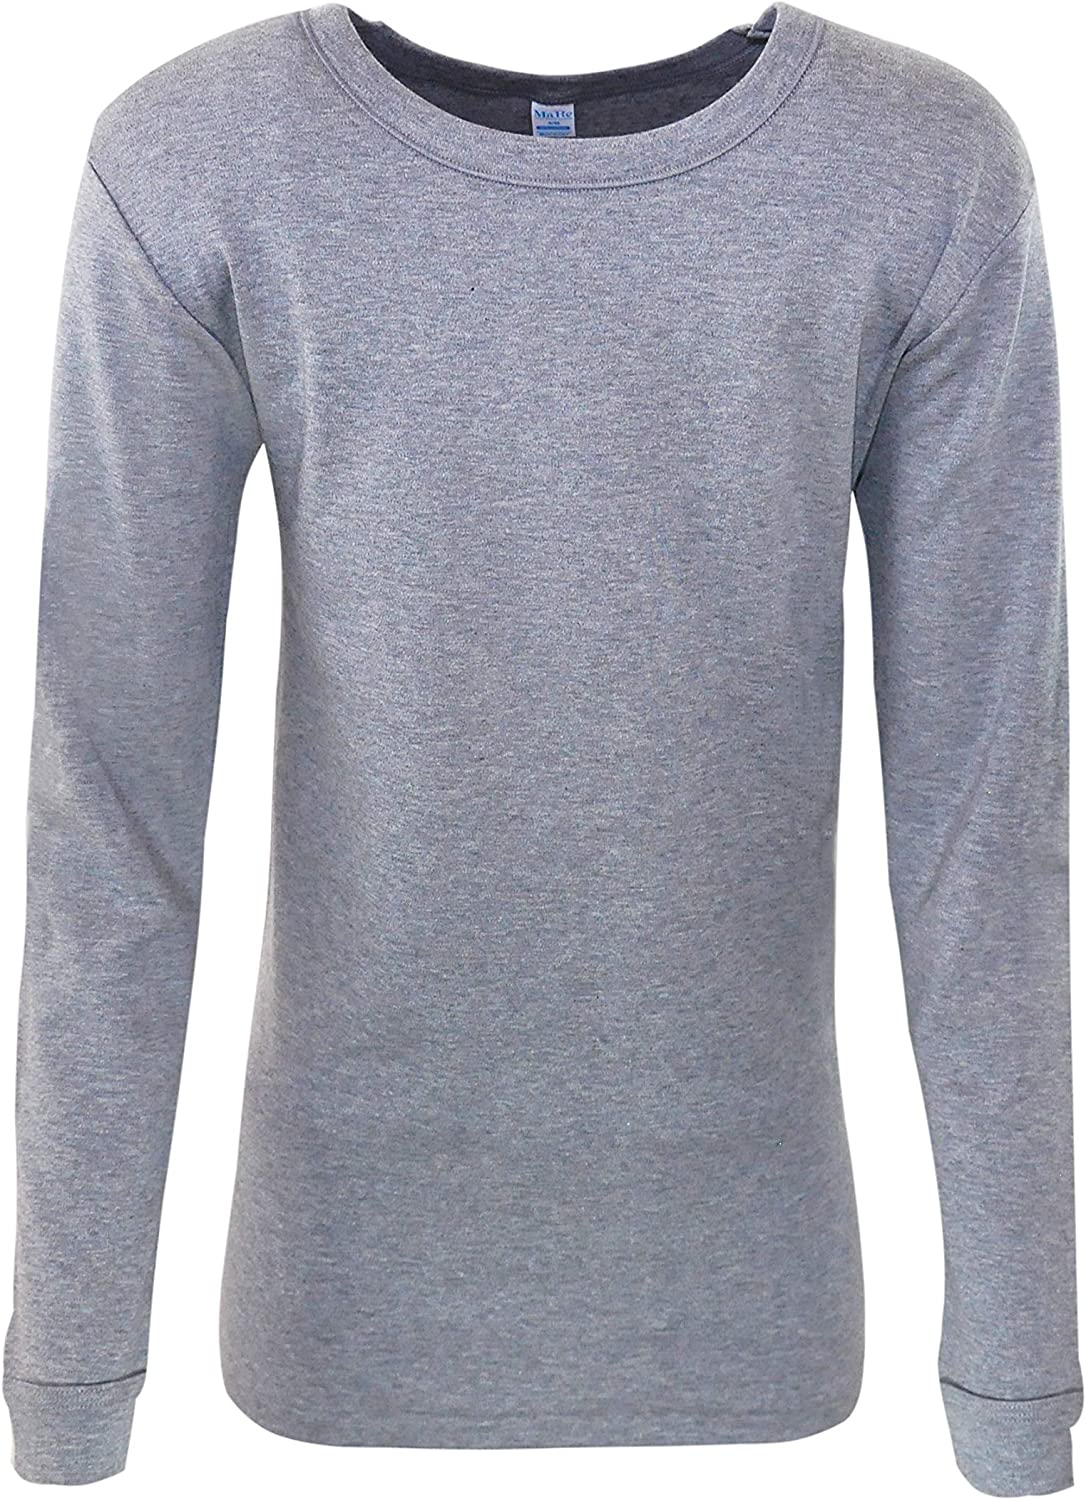 MaRe Premium Quality 100% Brushed Cotton/Fleece Men's Long Sleeved T-Shirt. Proudly Made in Italy.